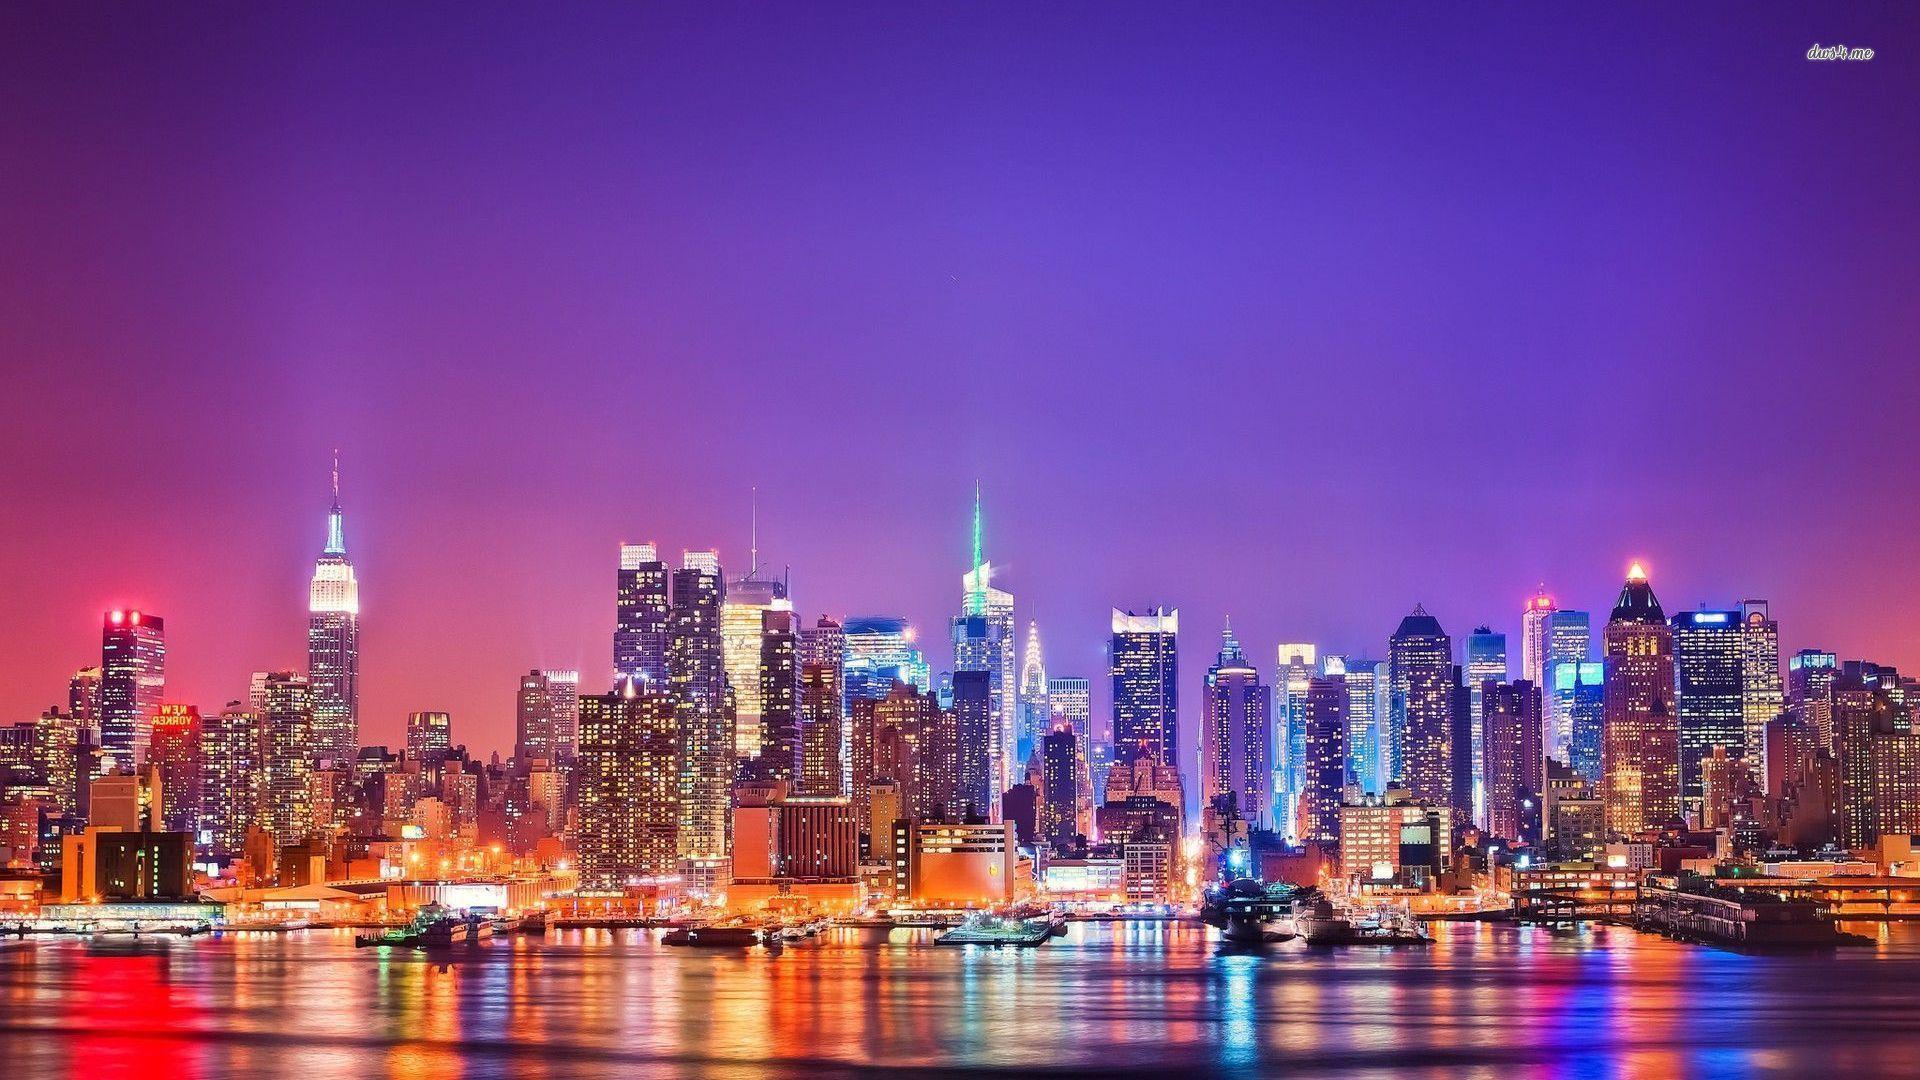 New york skyline wallpapers wallpaper cave for Immagini new york hd